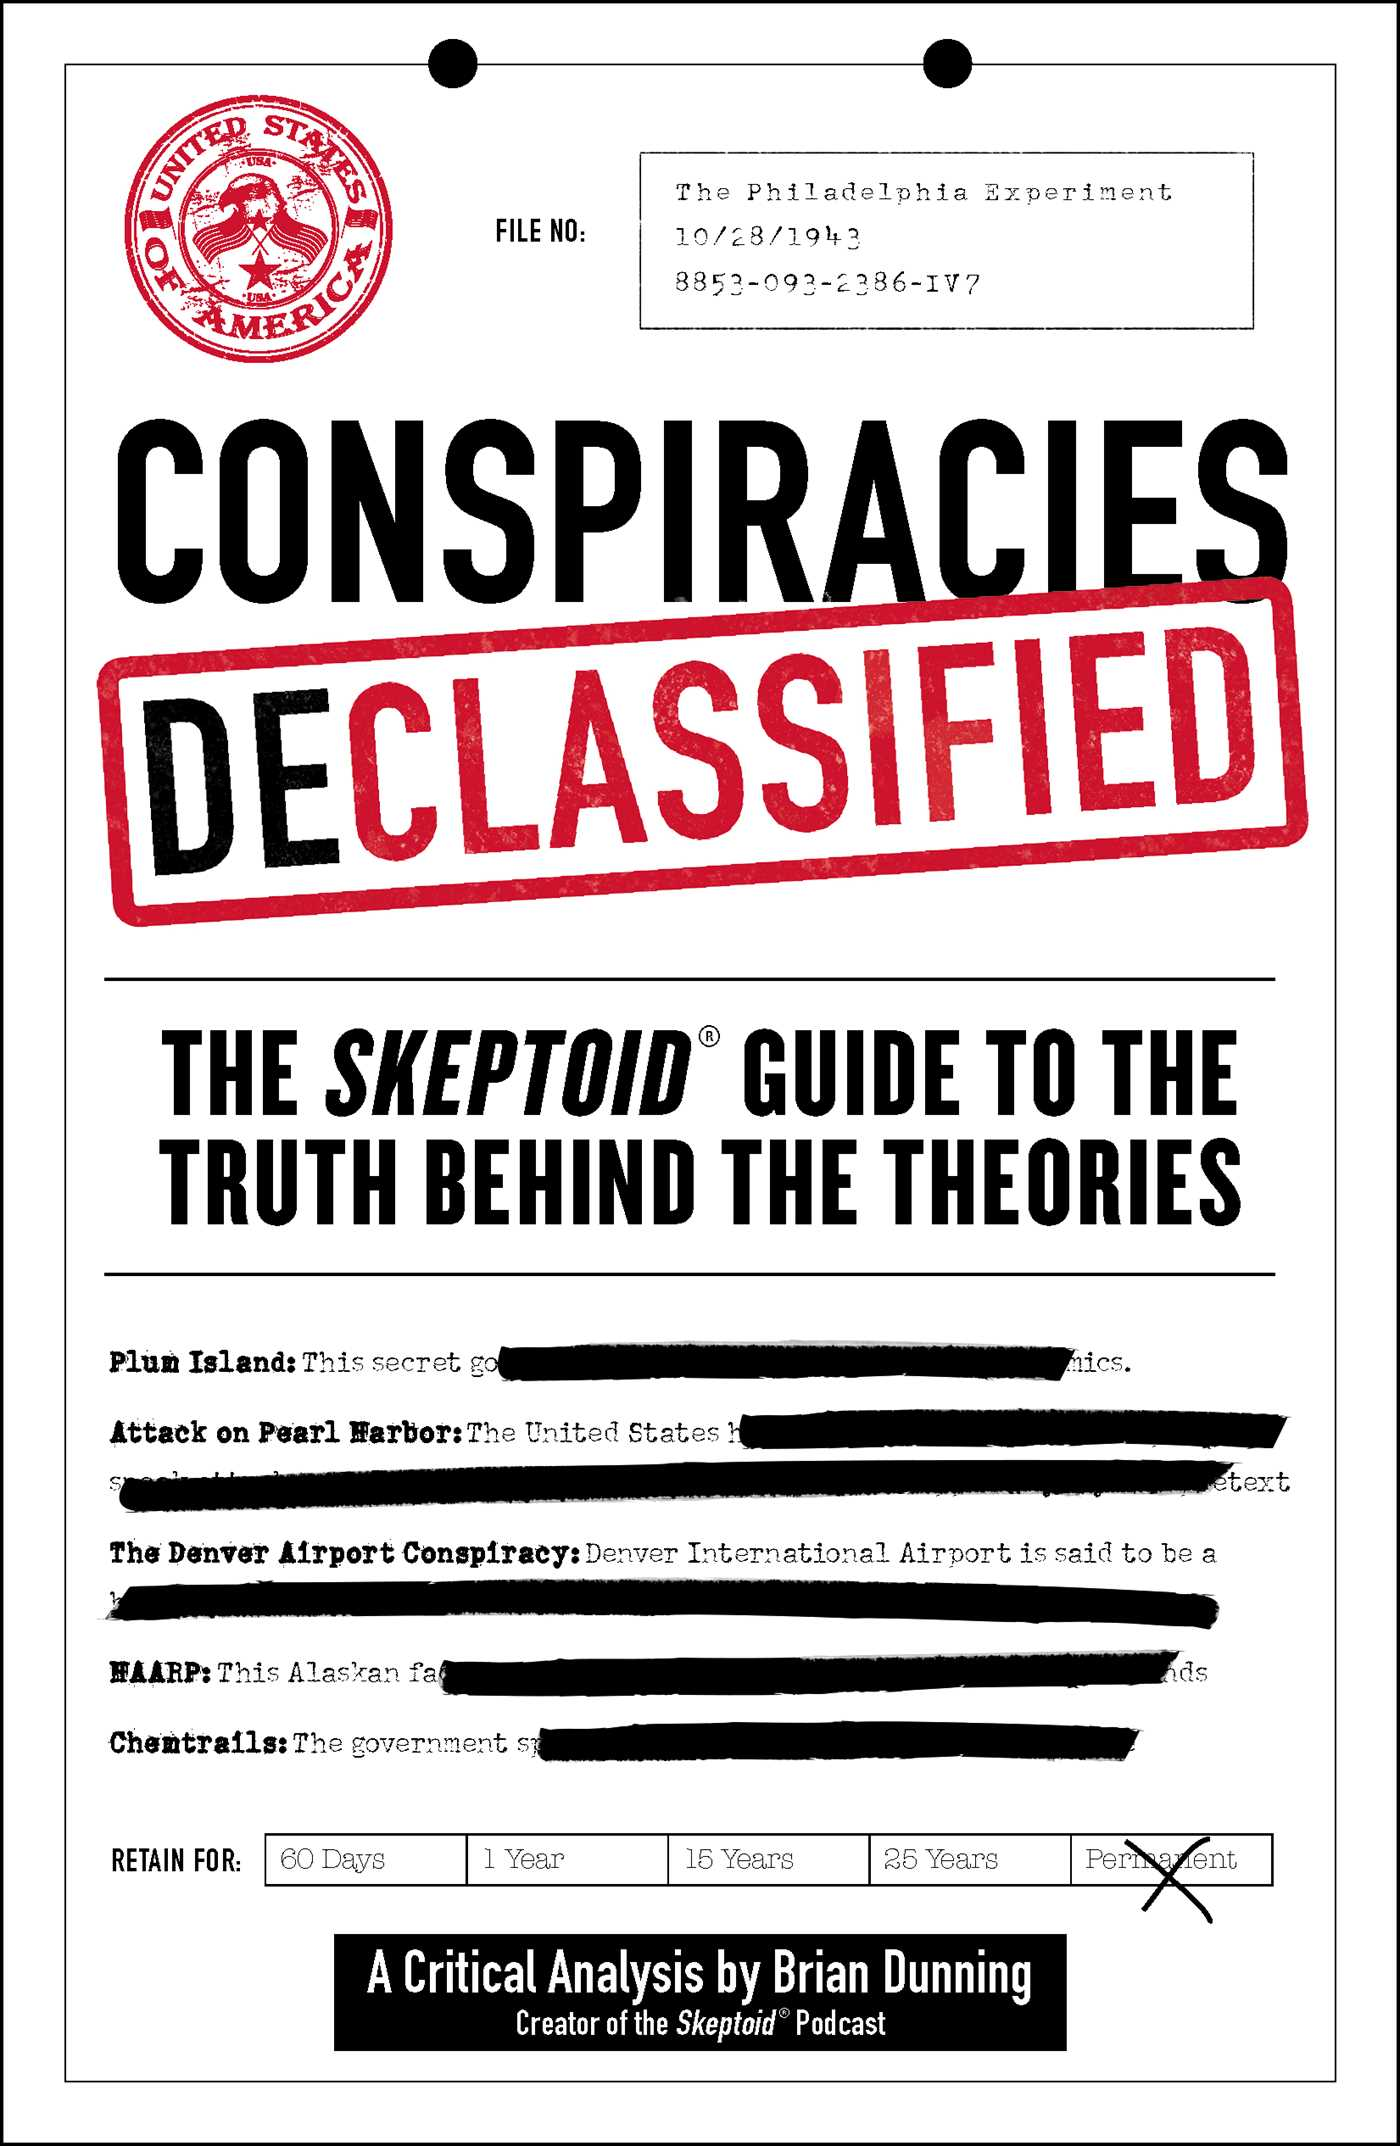 Conspiracies declassified 9781507206997 hr